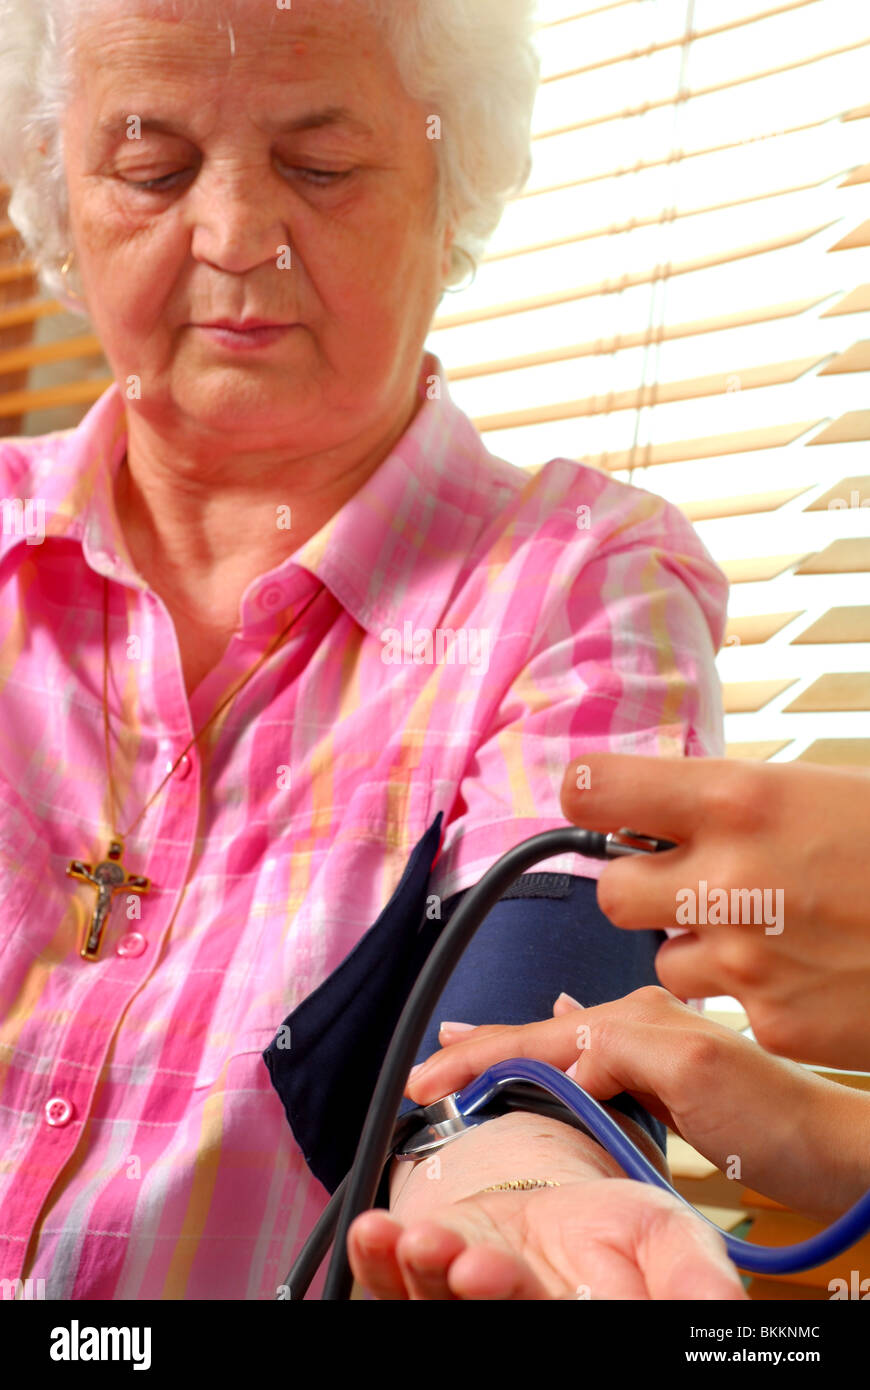 Close-up image of a blood pressure check up - Stock Image